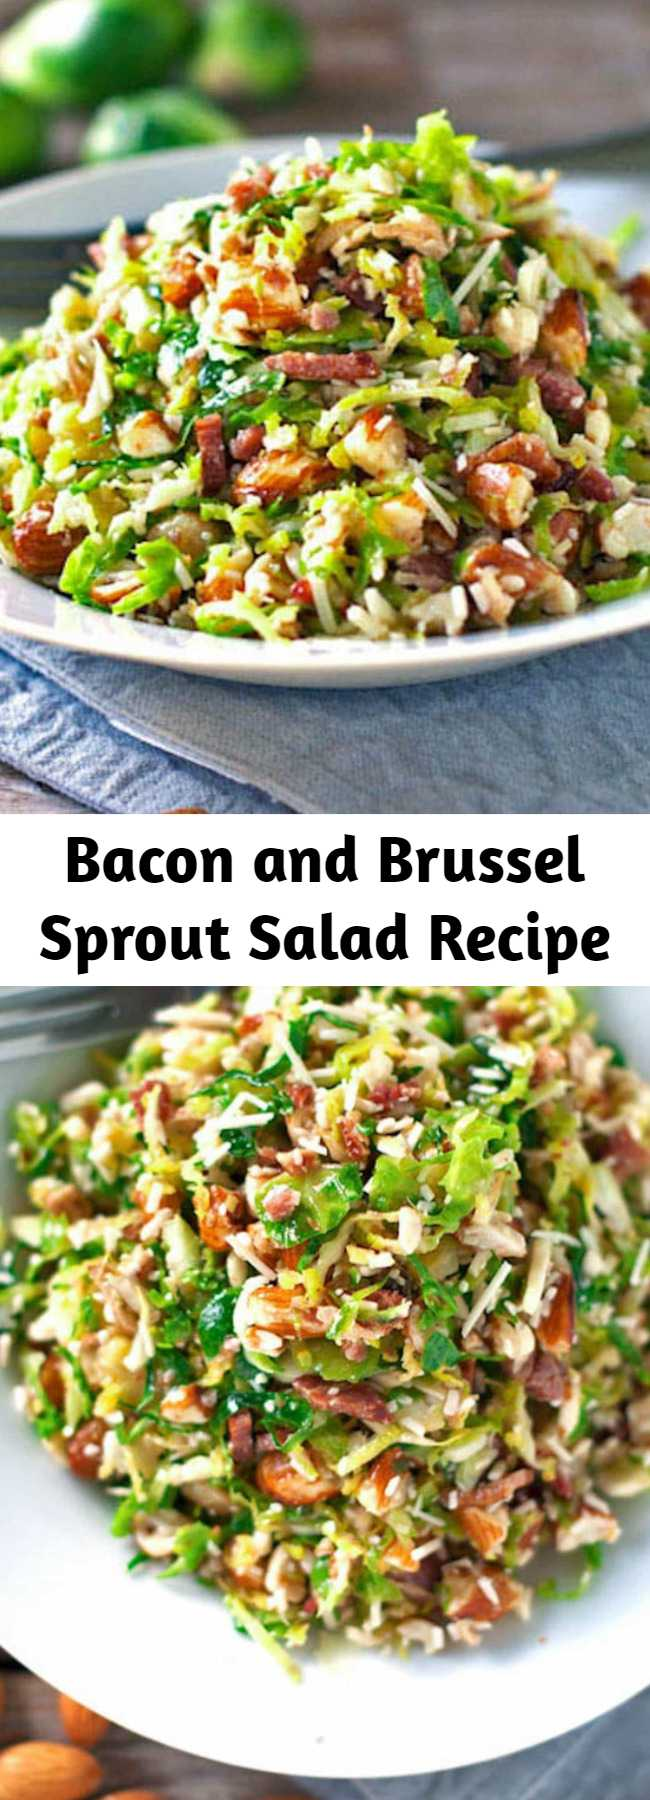 Bacon and Brussel Sprout Salad Recipe - This bacon and brussel sprout salad is so good! Thinly sliced brussel sprouts, crumbled bacon, Parmesan, almonds, and shallot citrus dressing. #salad #brusselsprout #thanksgiving #sides #recipe #easy #bacon